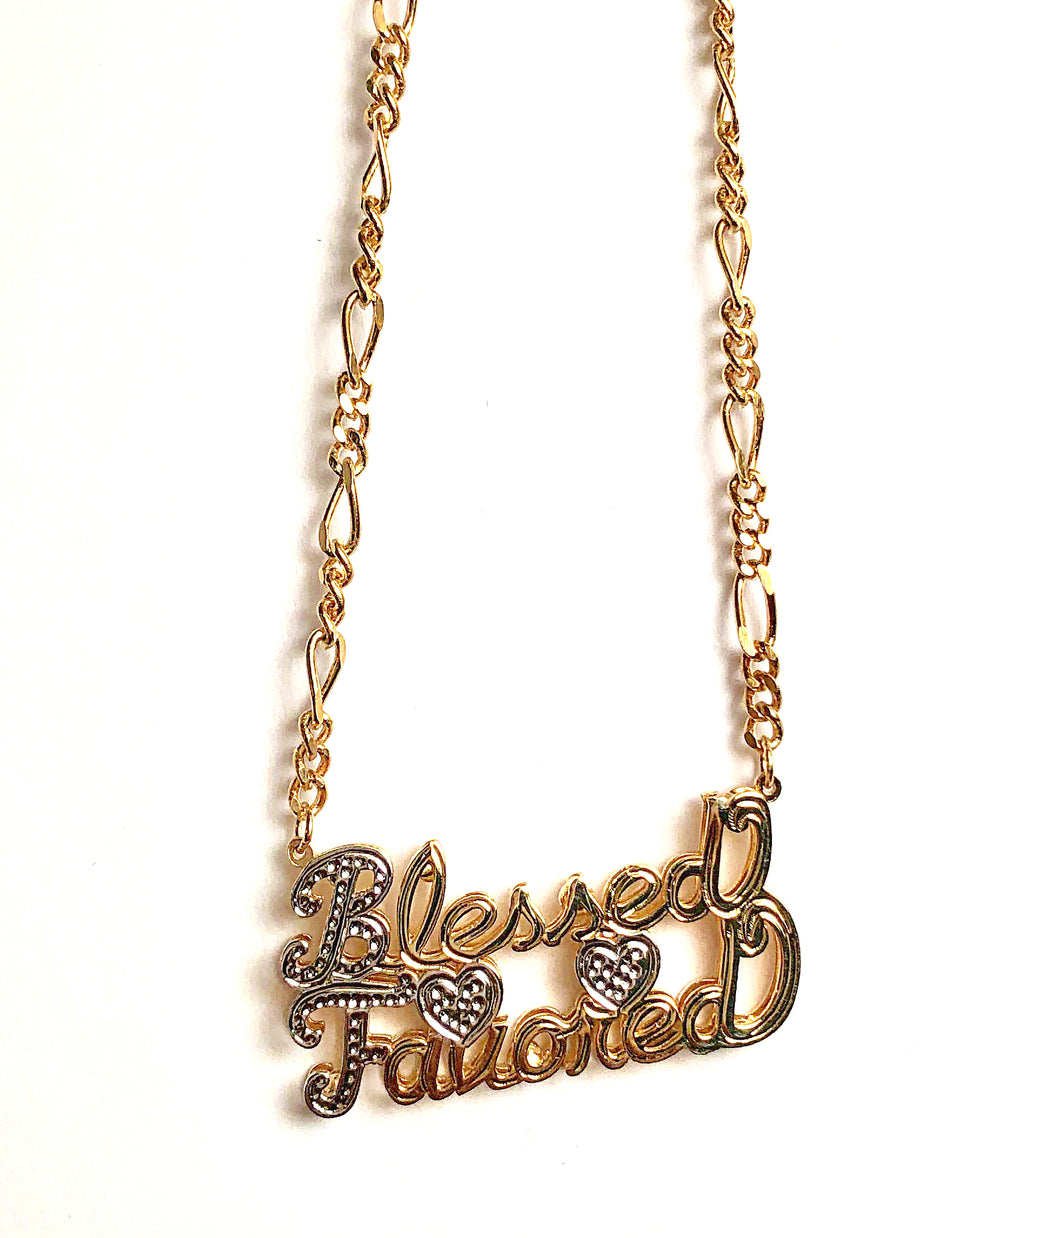 Blessed and Favored Double-Plated Gold Necklace - Love, Aoki-Marie